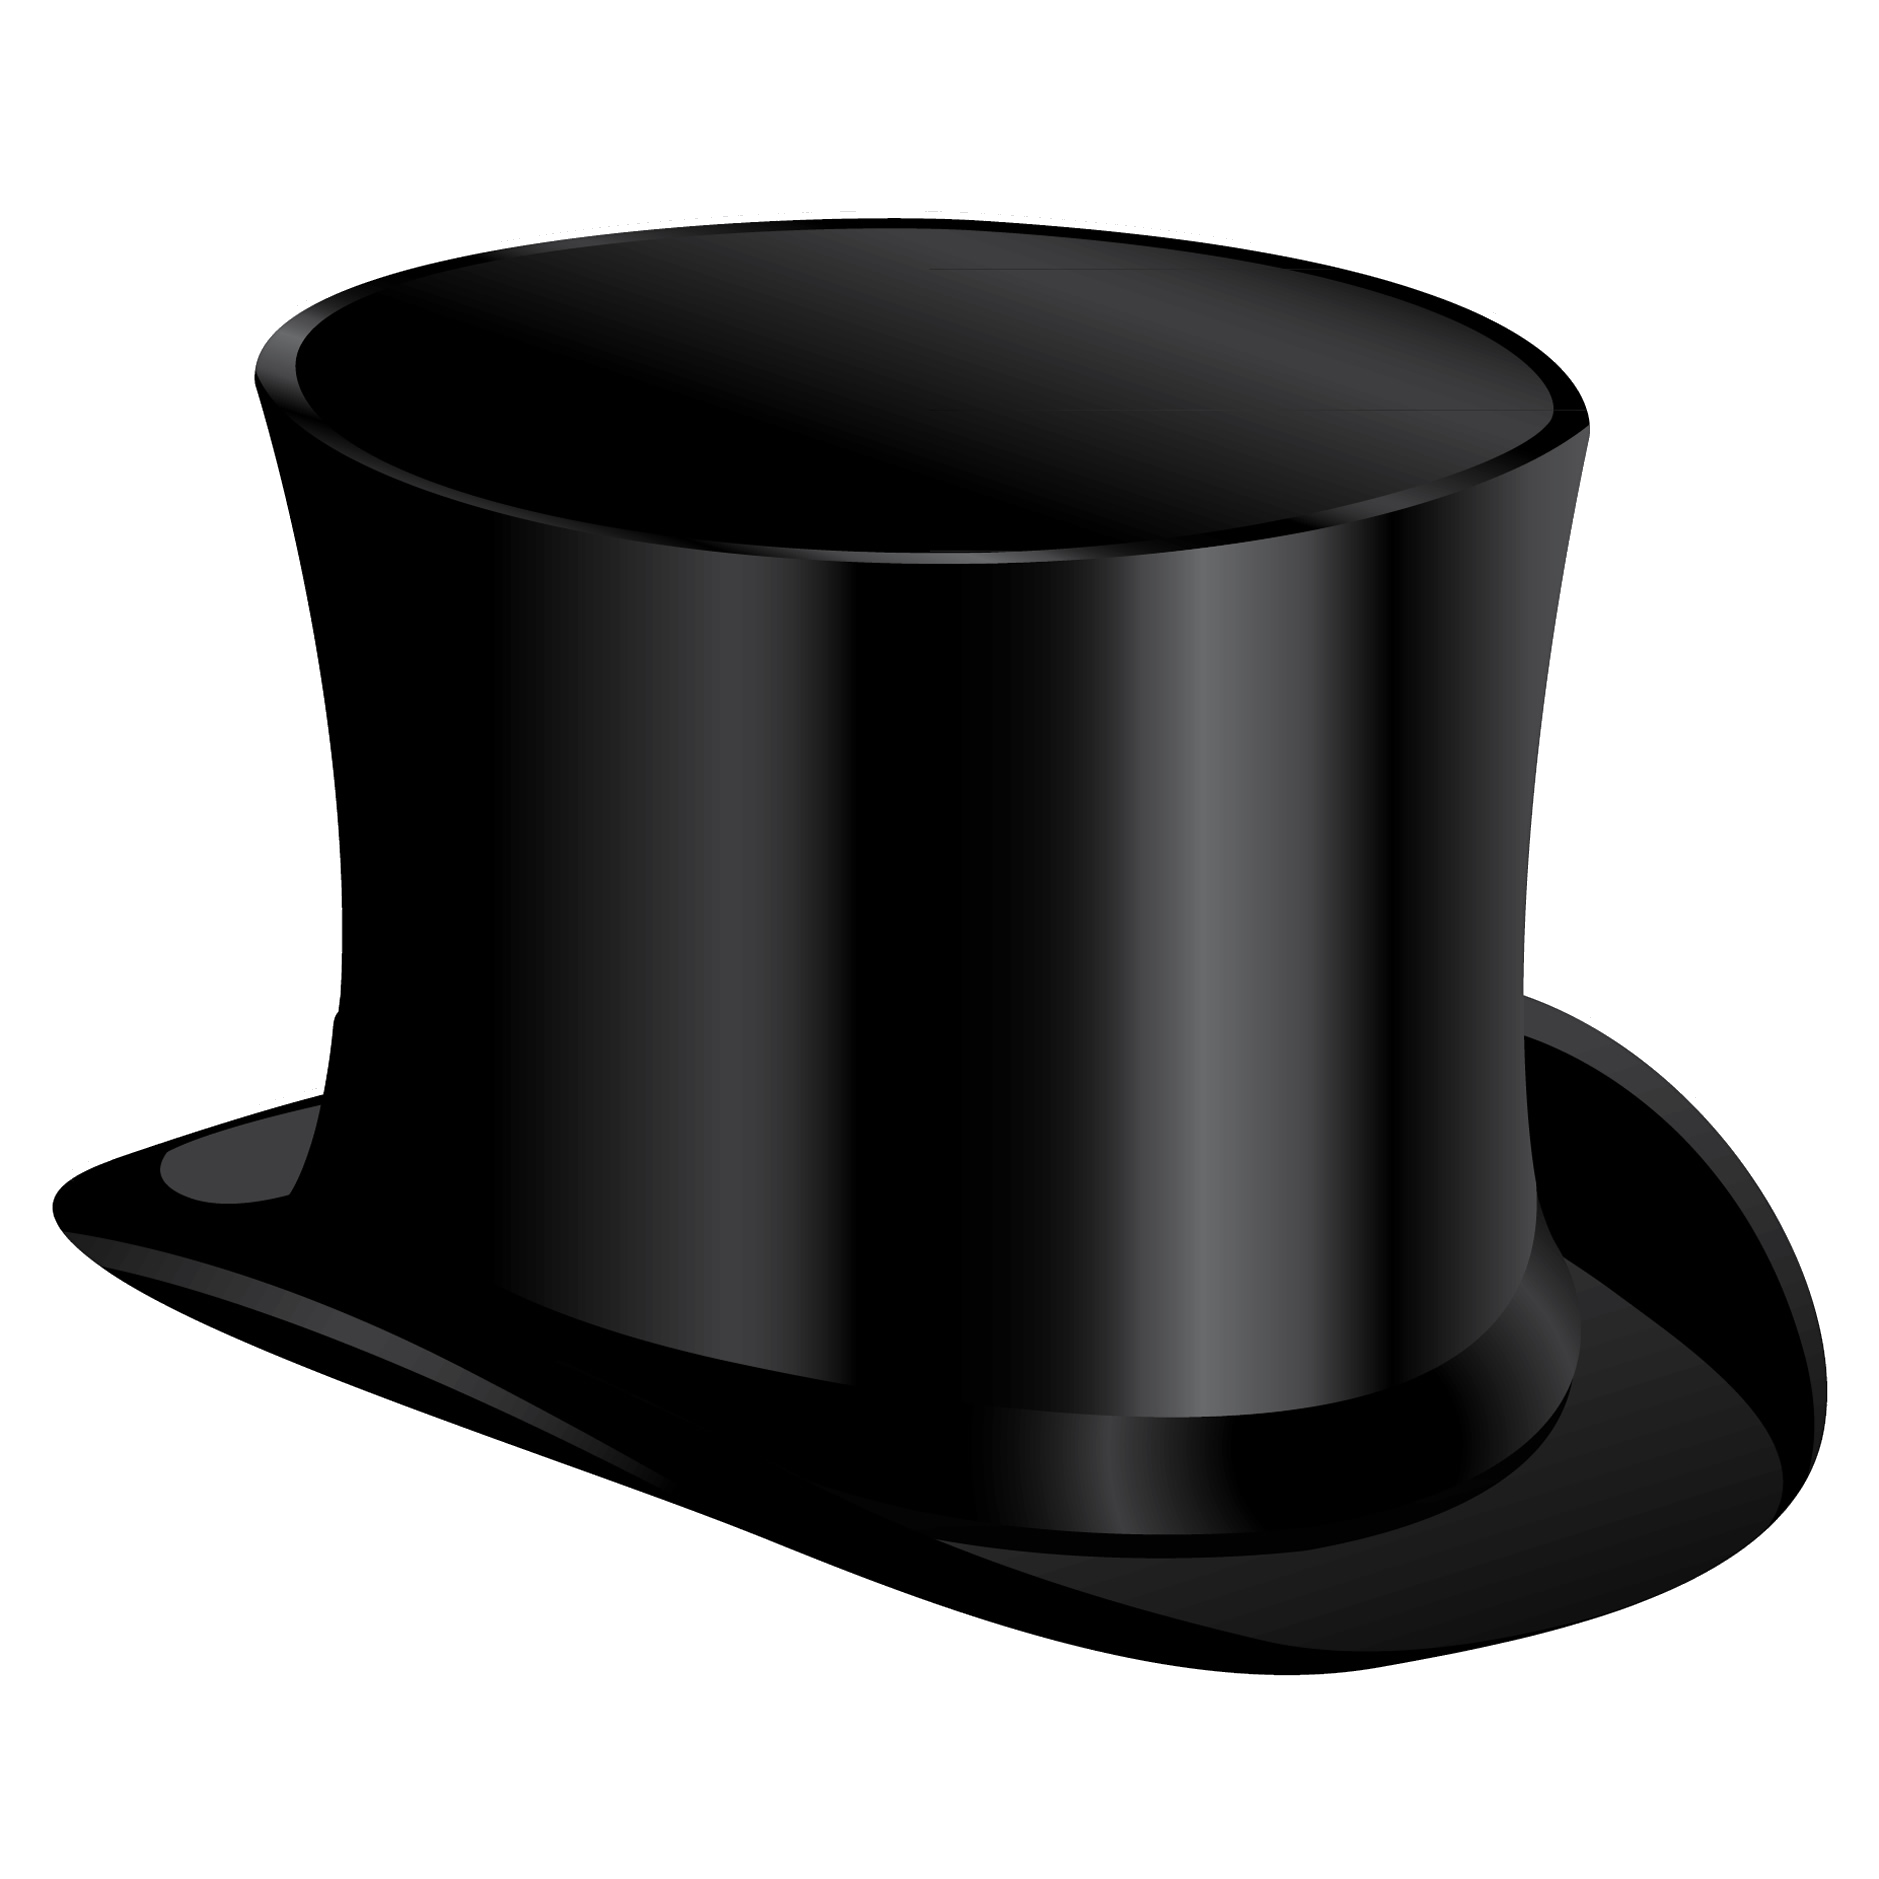 Top hat money clipart graphic royalty free stock Black cylinder hat PNG image | hat | Pinterest | Black graphic royalty free stock